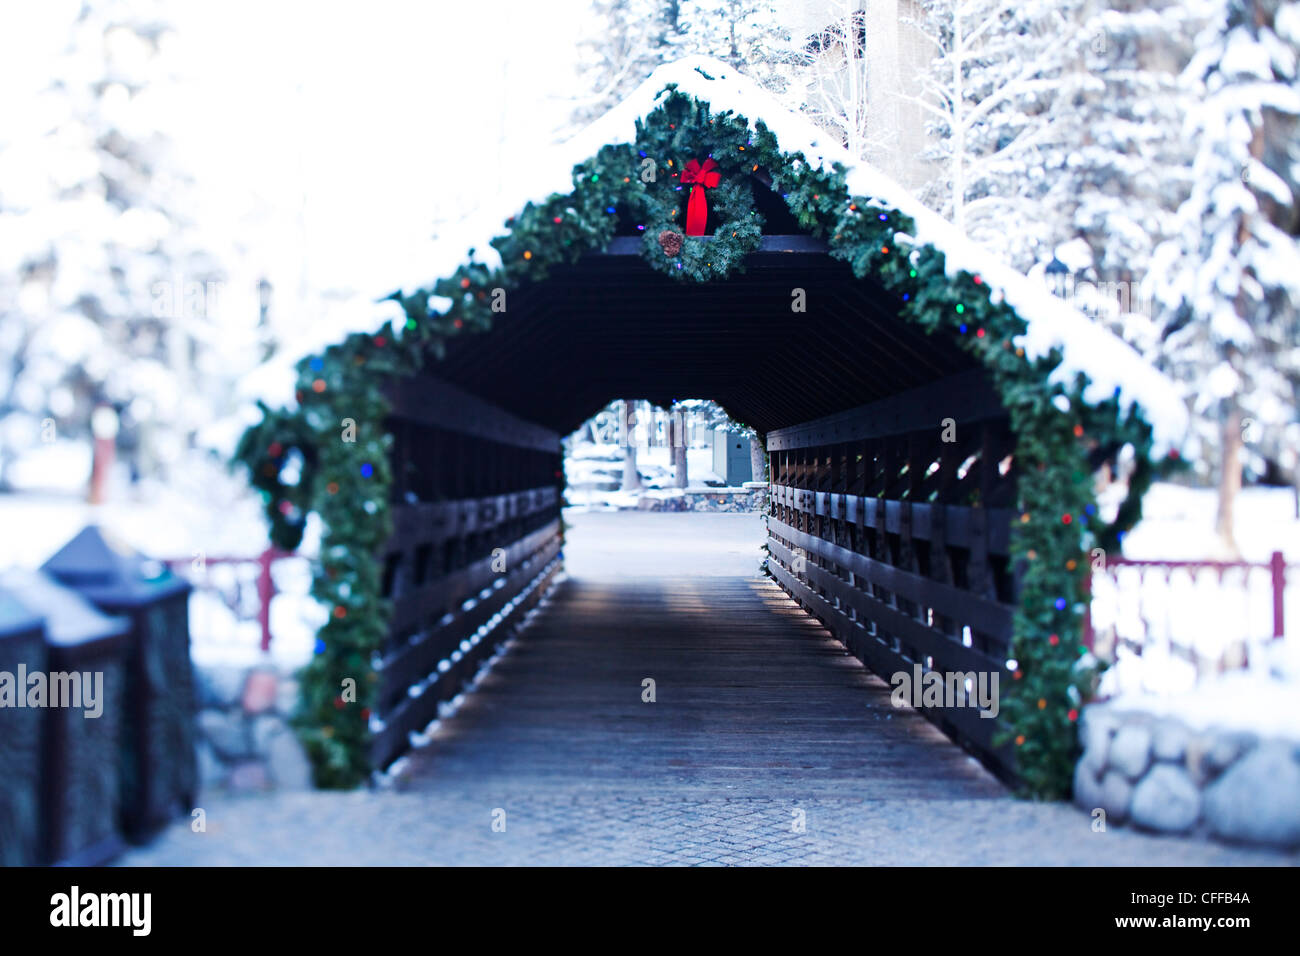 A athletic skier walking into a snowy covered walkway in Colorado. - Stock Image